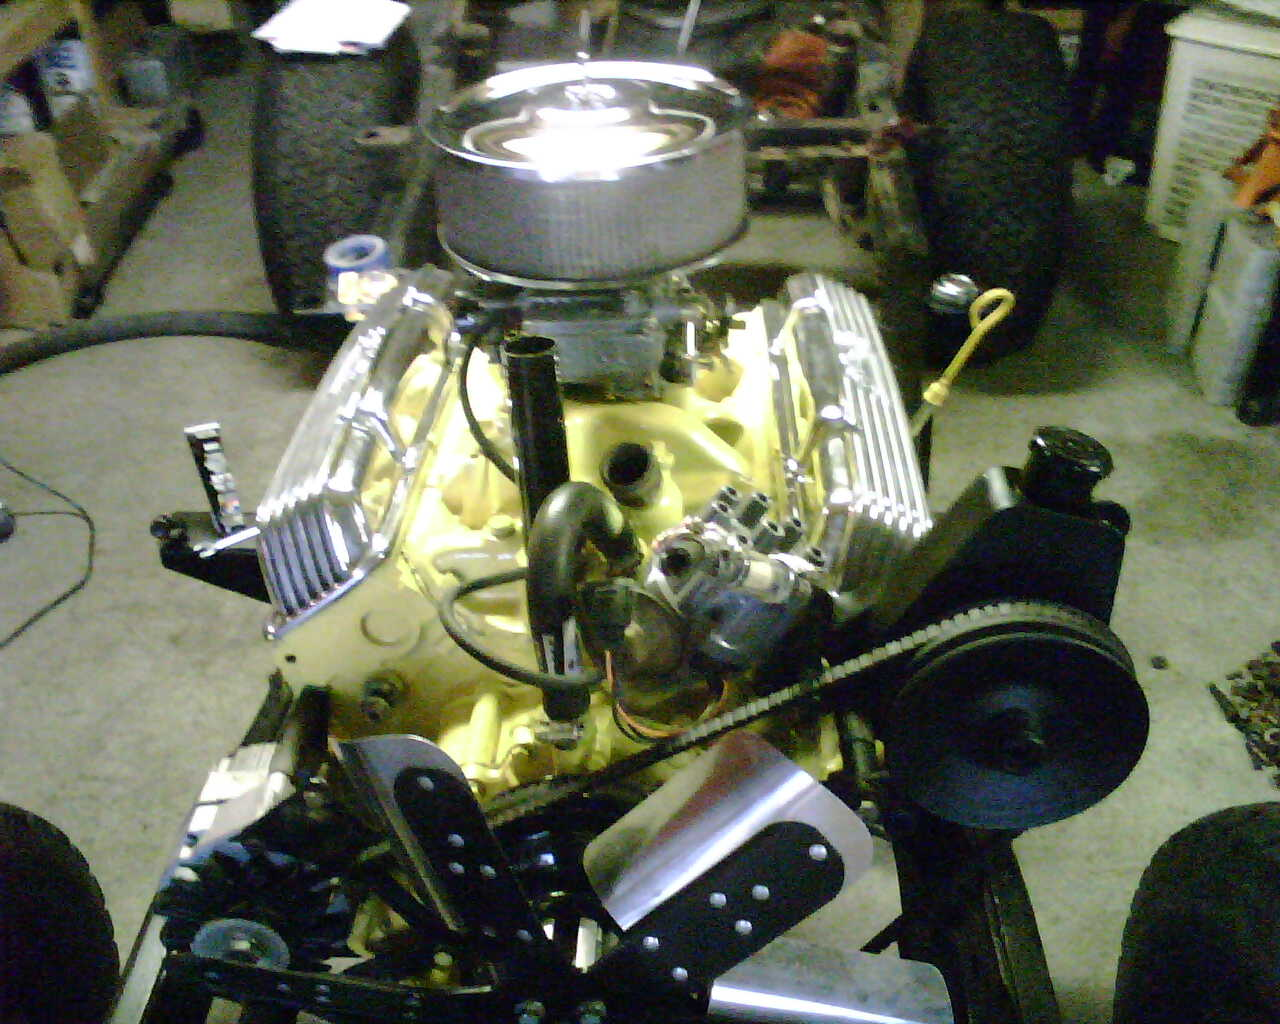 Jeep Cj7 Cj With 304 Have To Replace Ignition Coil Often 1973 Cj5 V8 Wiring Diagram Thumb